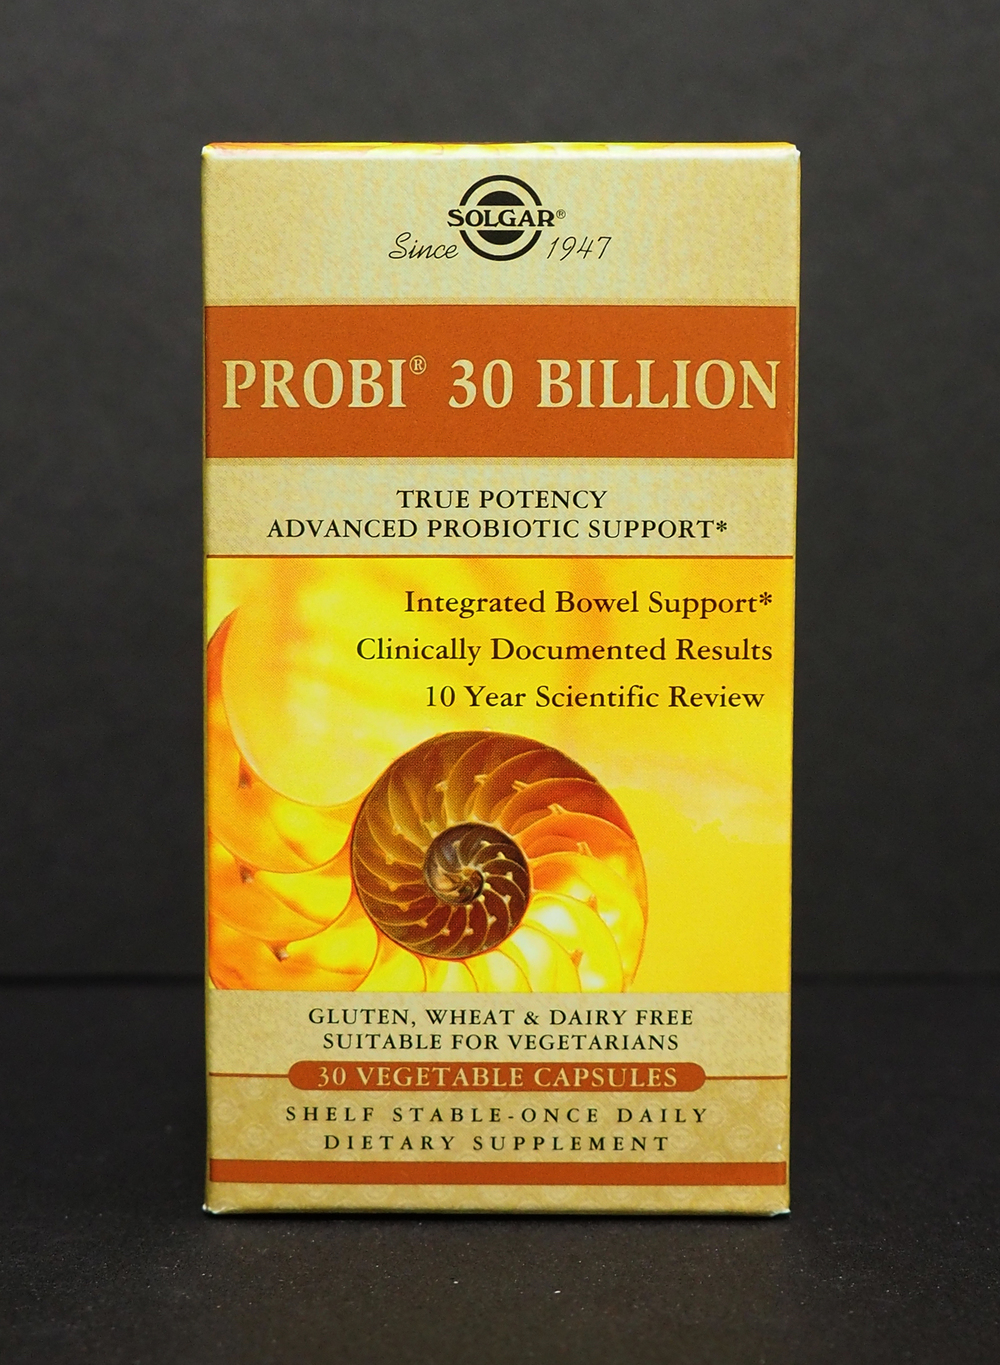 Probi 30 Billion by Solgar (Contains a single strain of L.  Planetarum  and is well tolerated by most IBS sufferers)